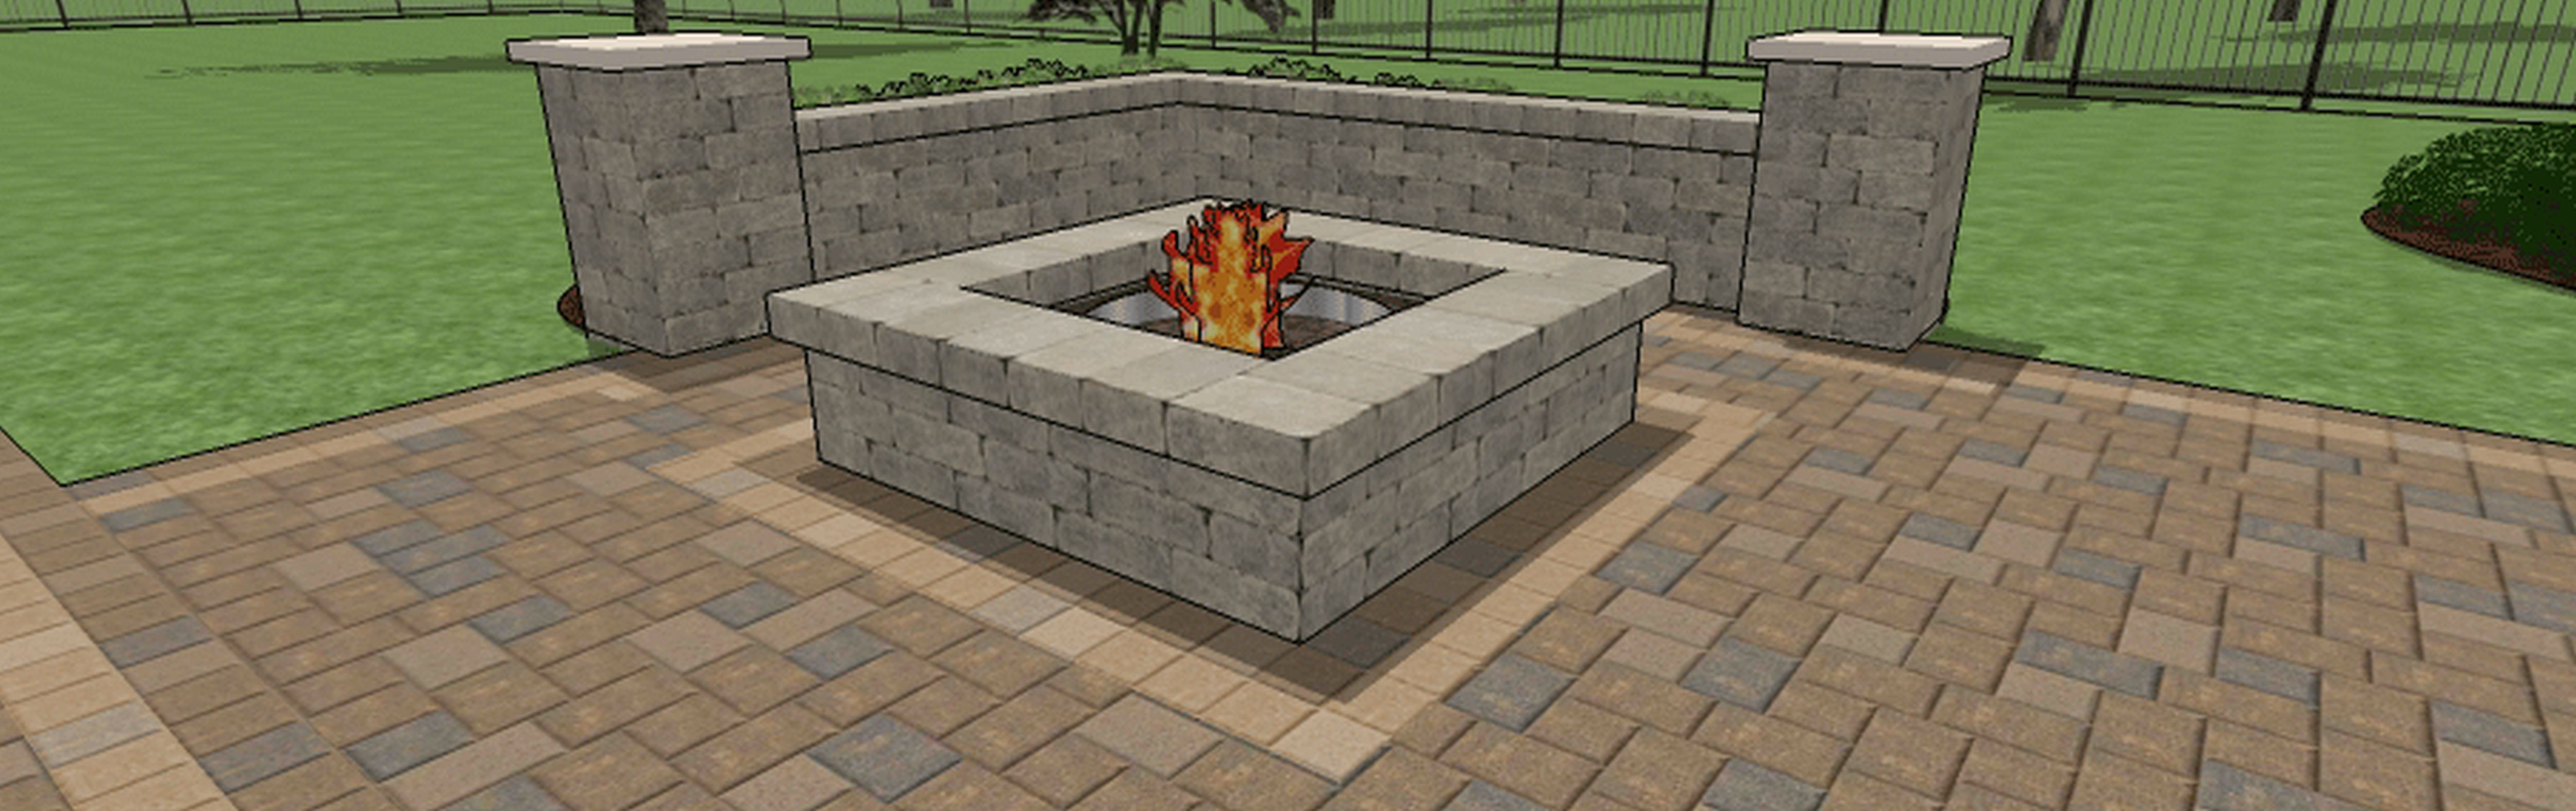 100 outdoor barbeque designs homelife 11 barbeques bbq